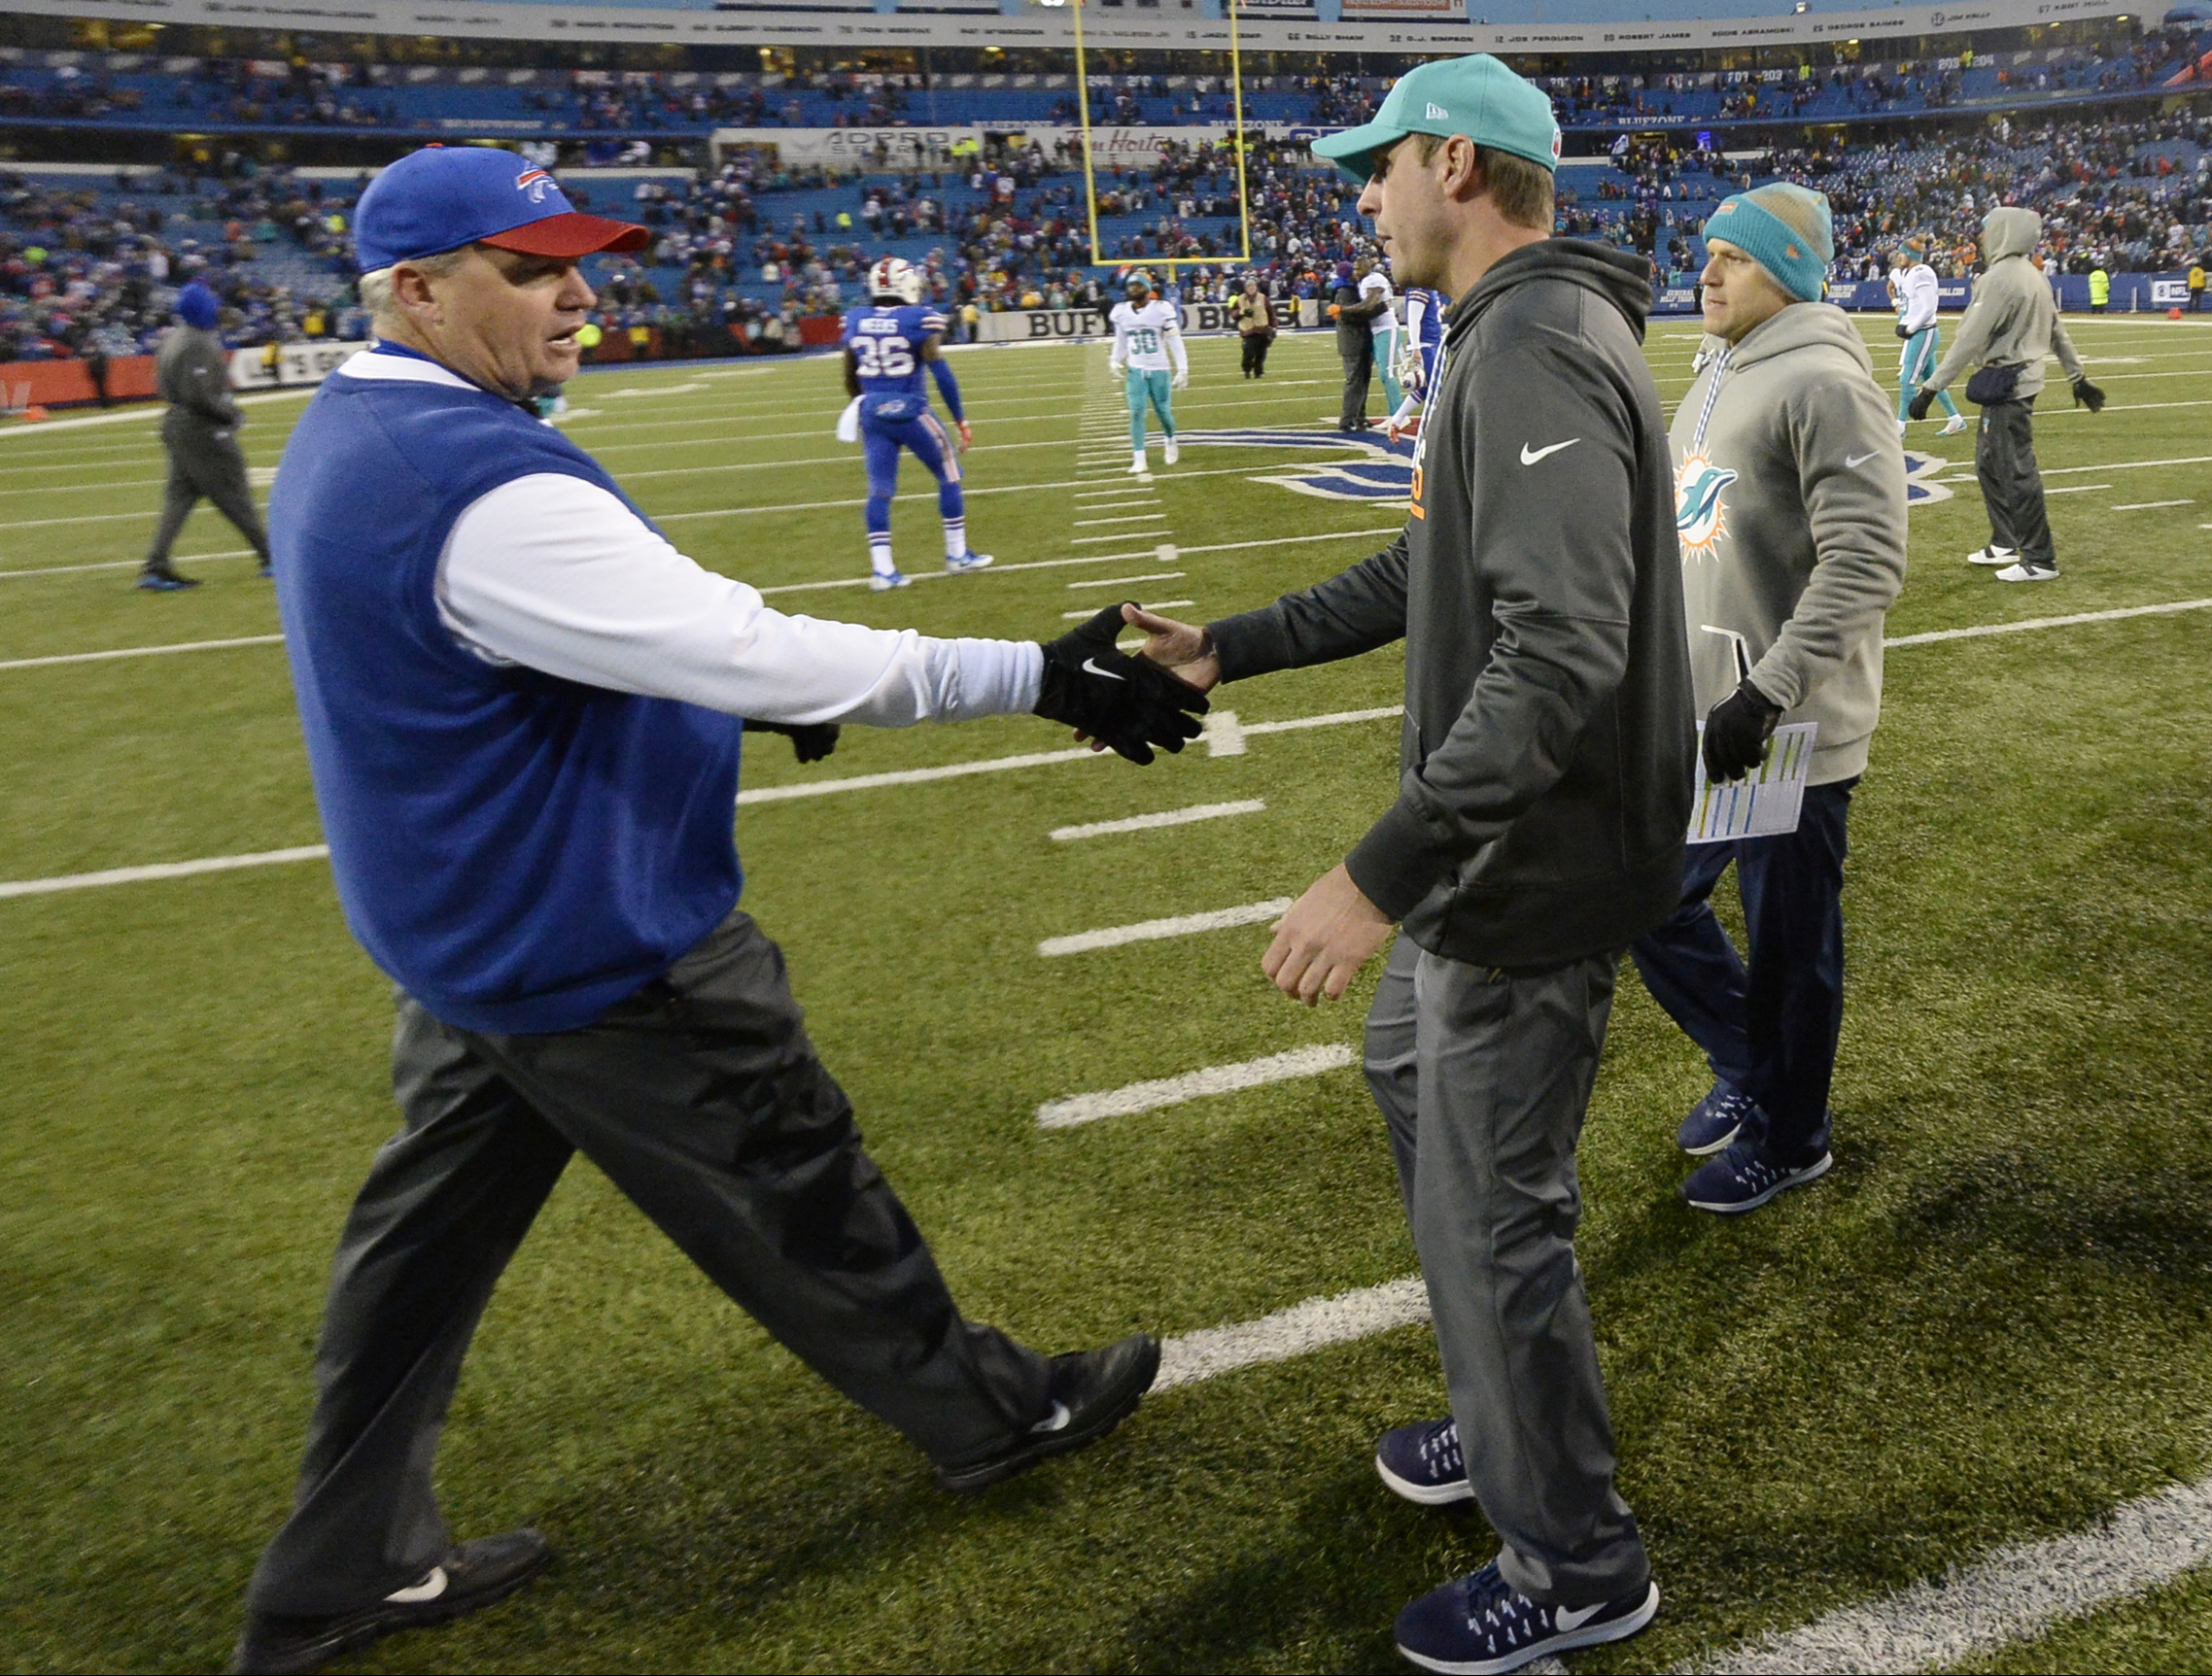 Buffalo Bills head coach Rex Ryan, left, shakes hands with Miami Dolphins head coach Adam Gase, right, after an NFL football game Saturday, Dec. 24, 2016, in Orchard Park, N.Y. The Dolphins won 34-31. (AP Photo/Adrian Kraus)